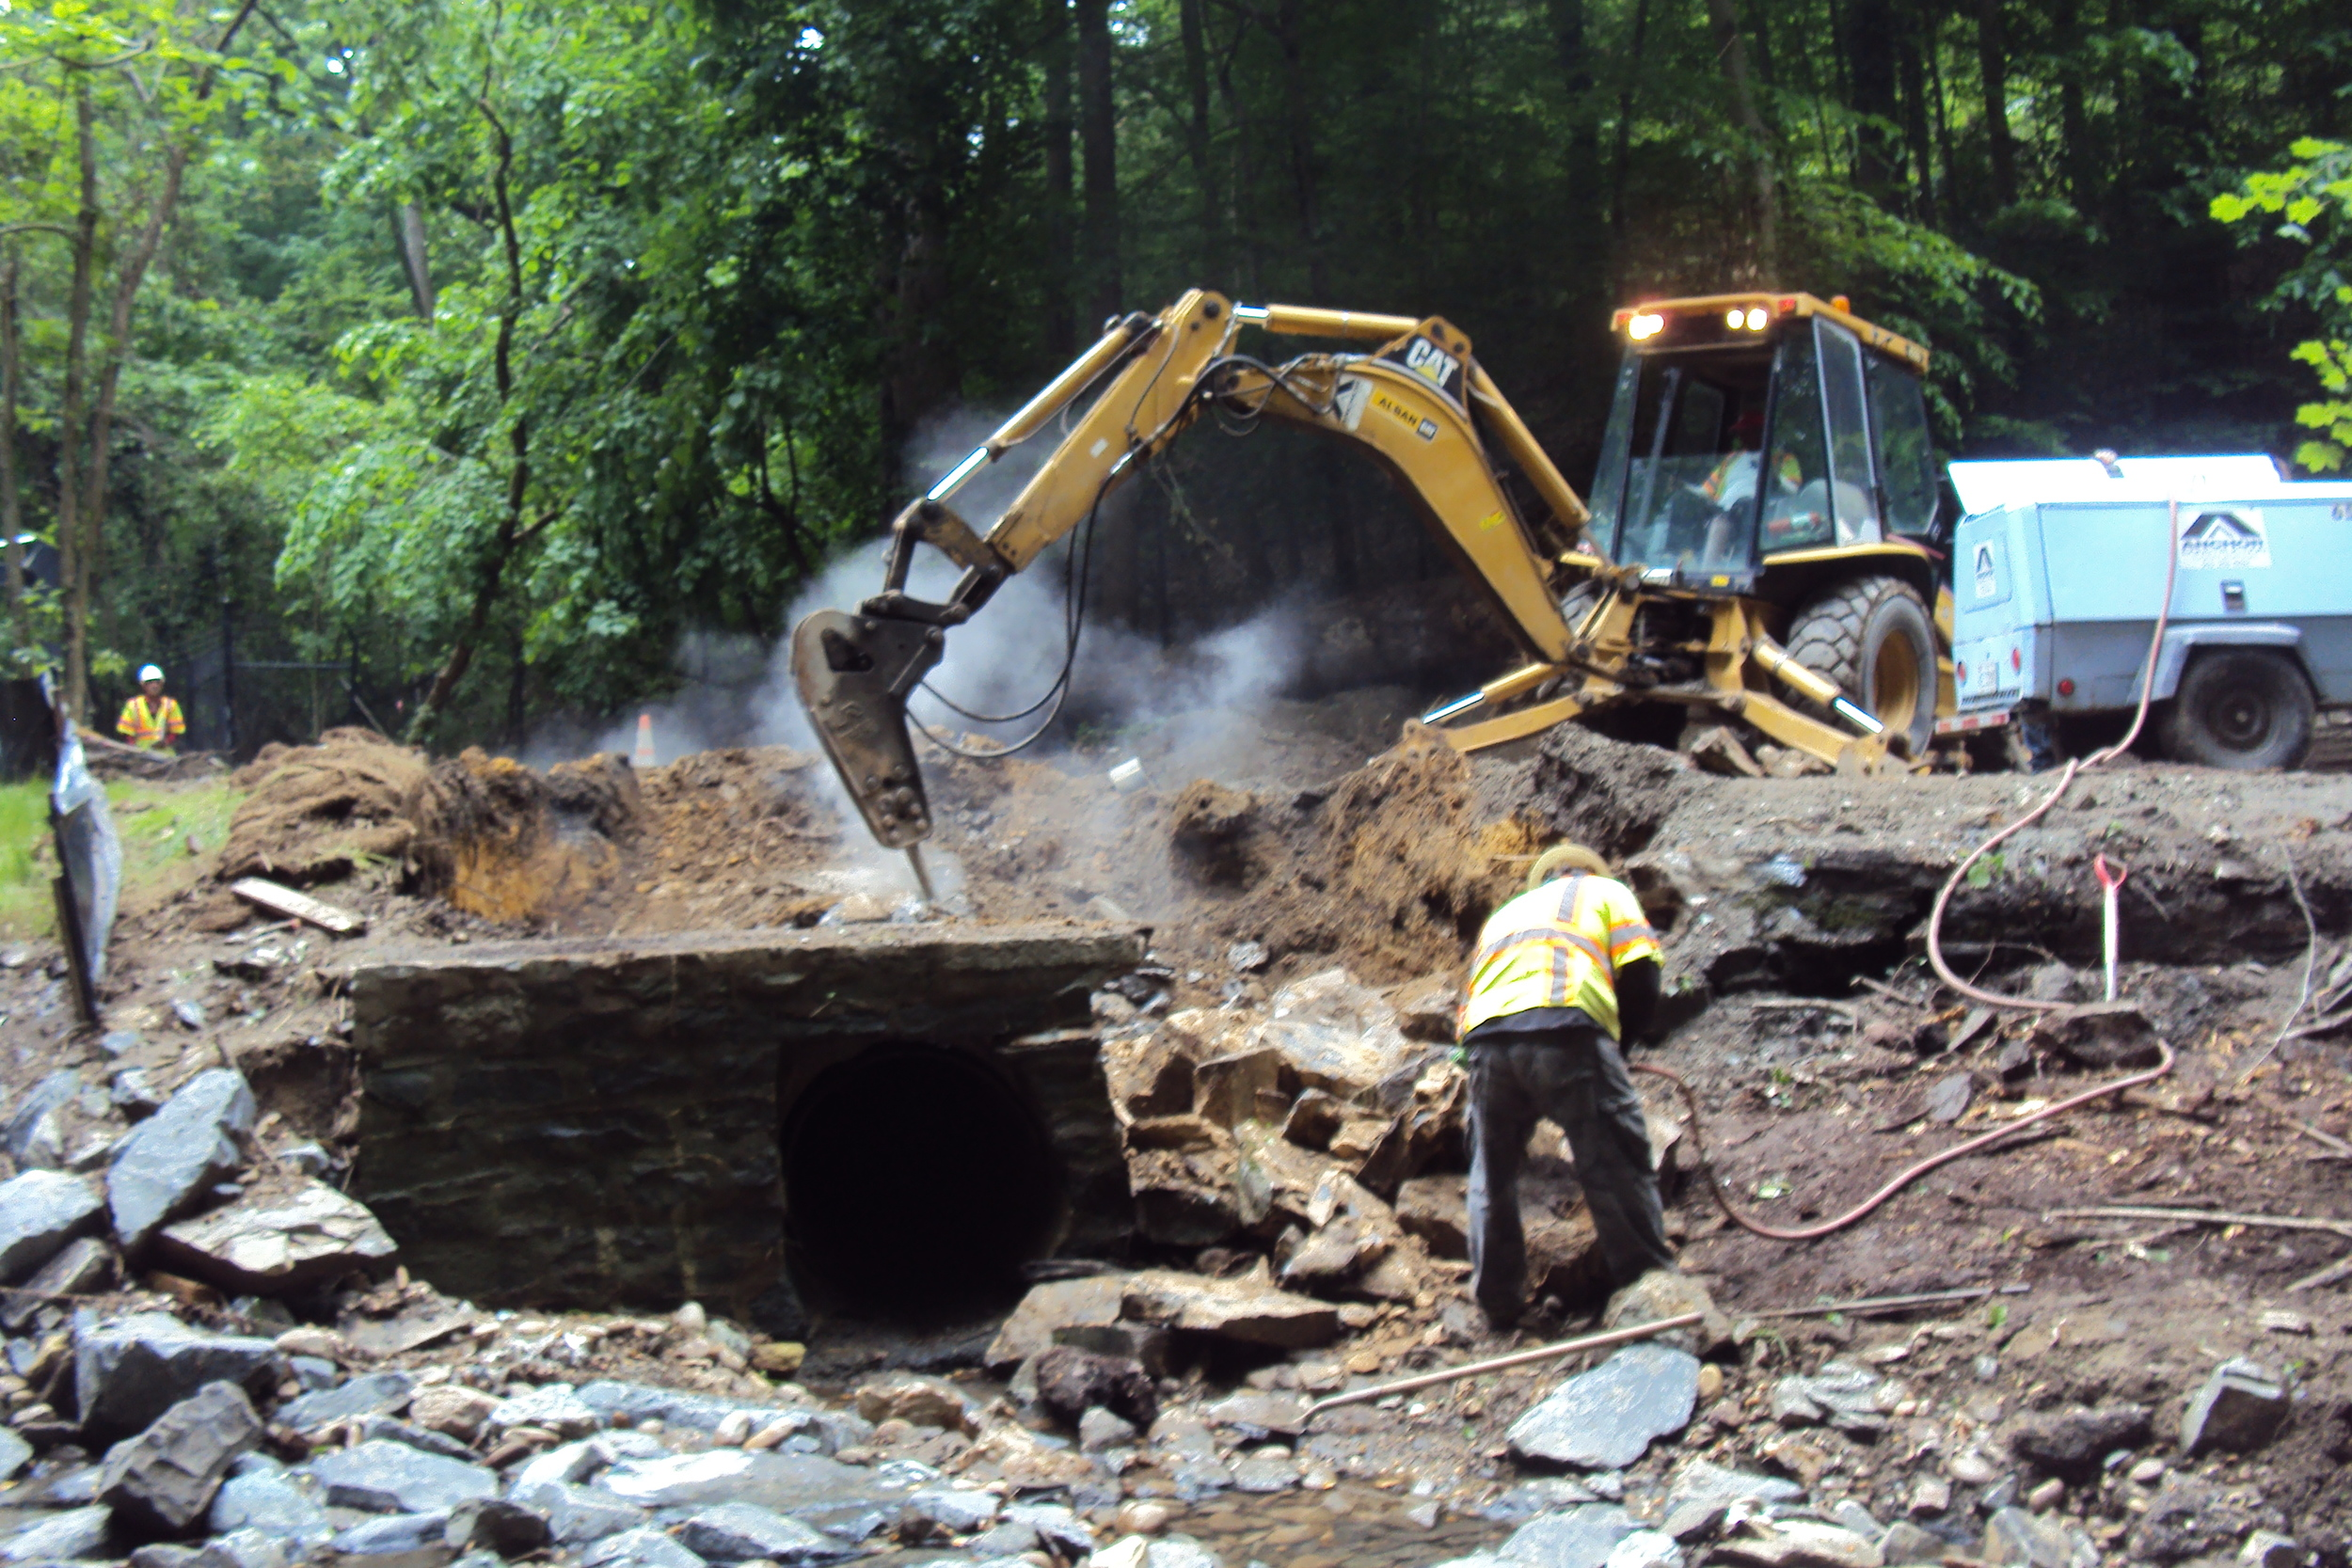 The contractor salvaged the stone from the existing culvert headwalls, some of which had collapsed